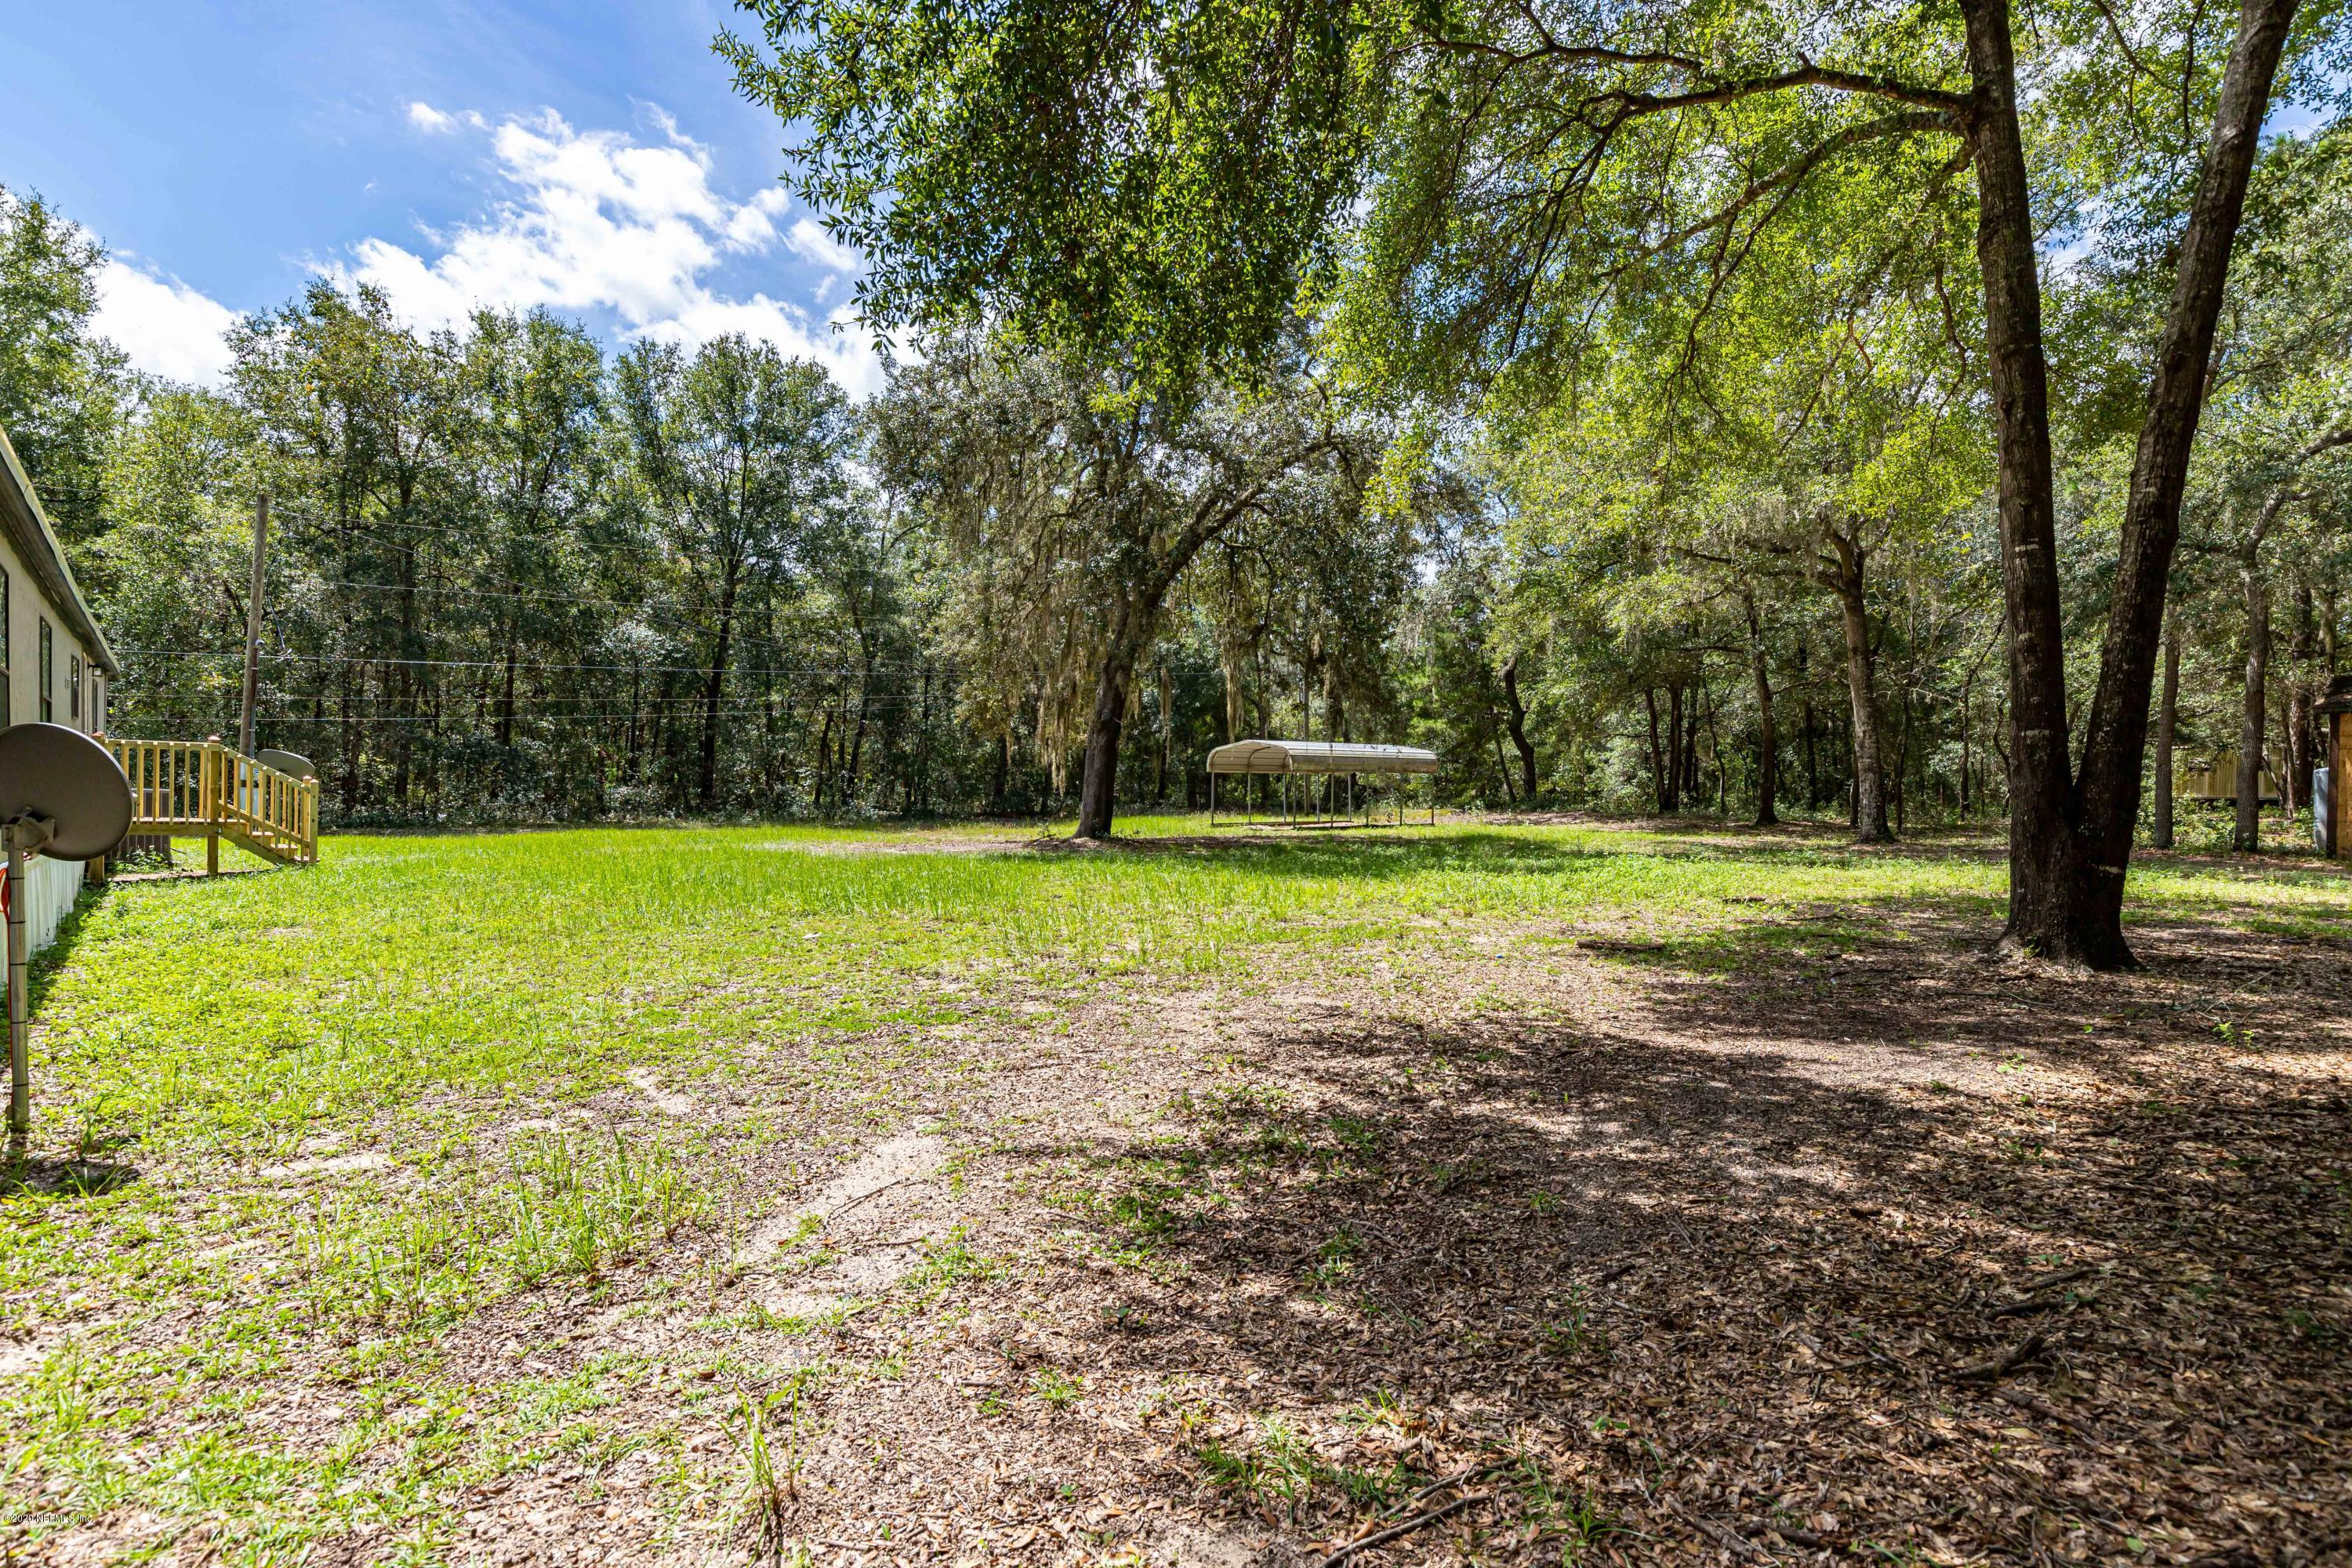 7808 TWIN LAKES, KEYSTONE HEIGHTS, FLORIDA 32656, 4 Bedrooms Bedrooms, ,2 BathroomsBathrooms,Residential,For sale,TWIN LAKES,1073696